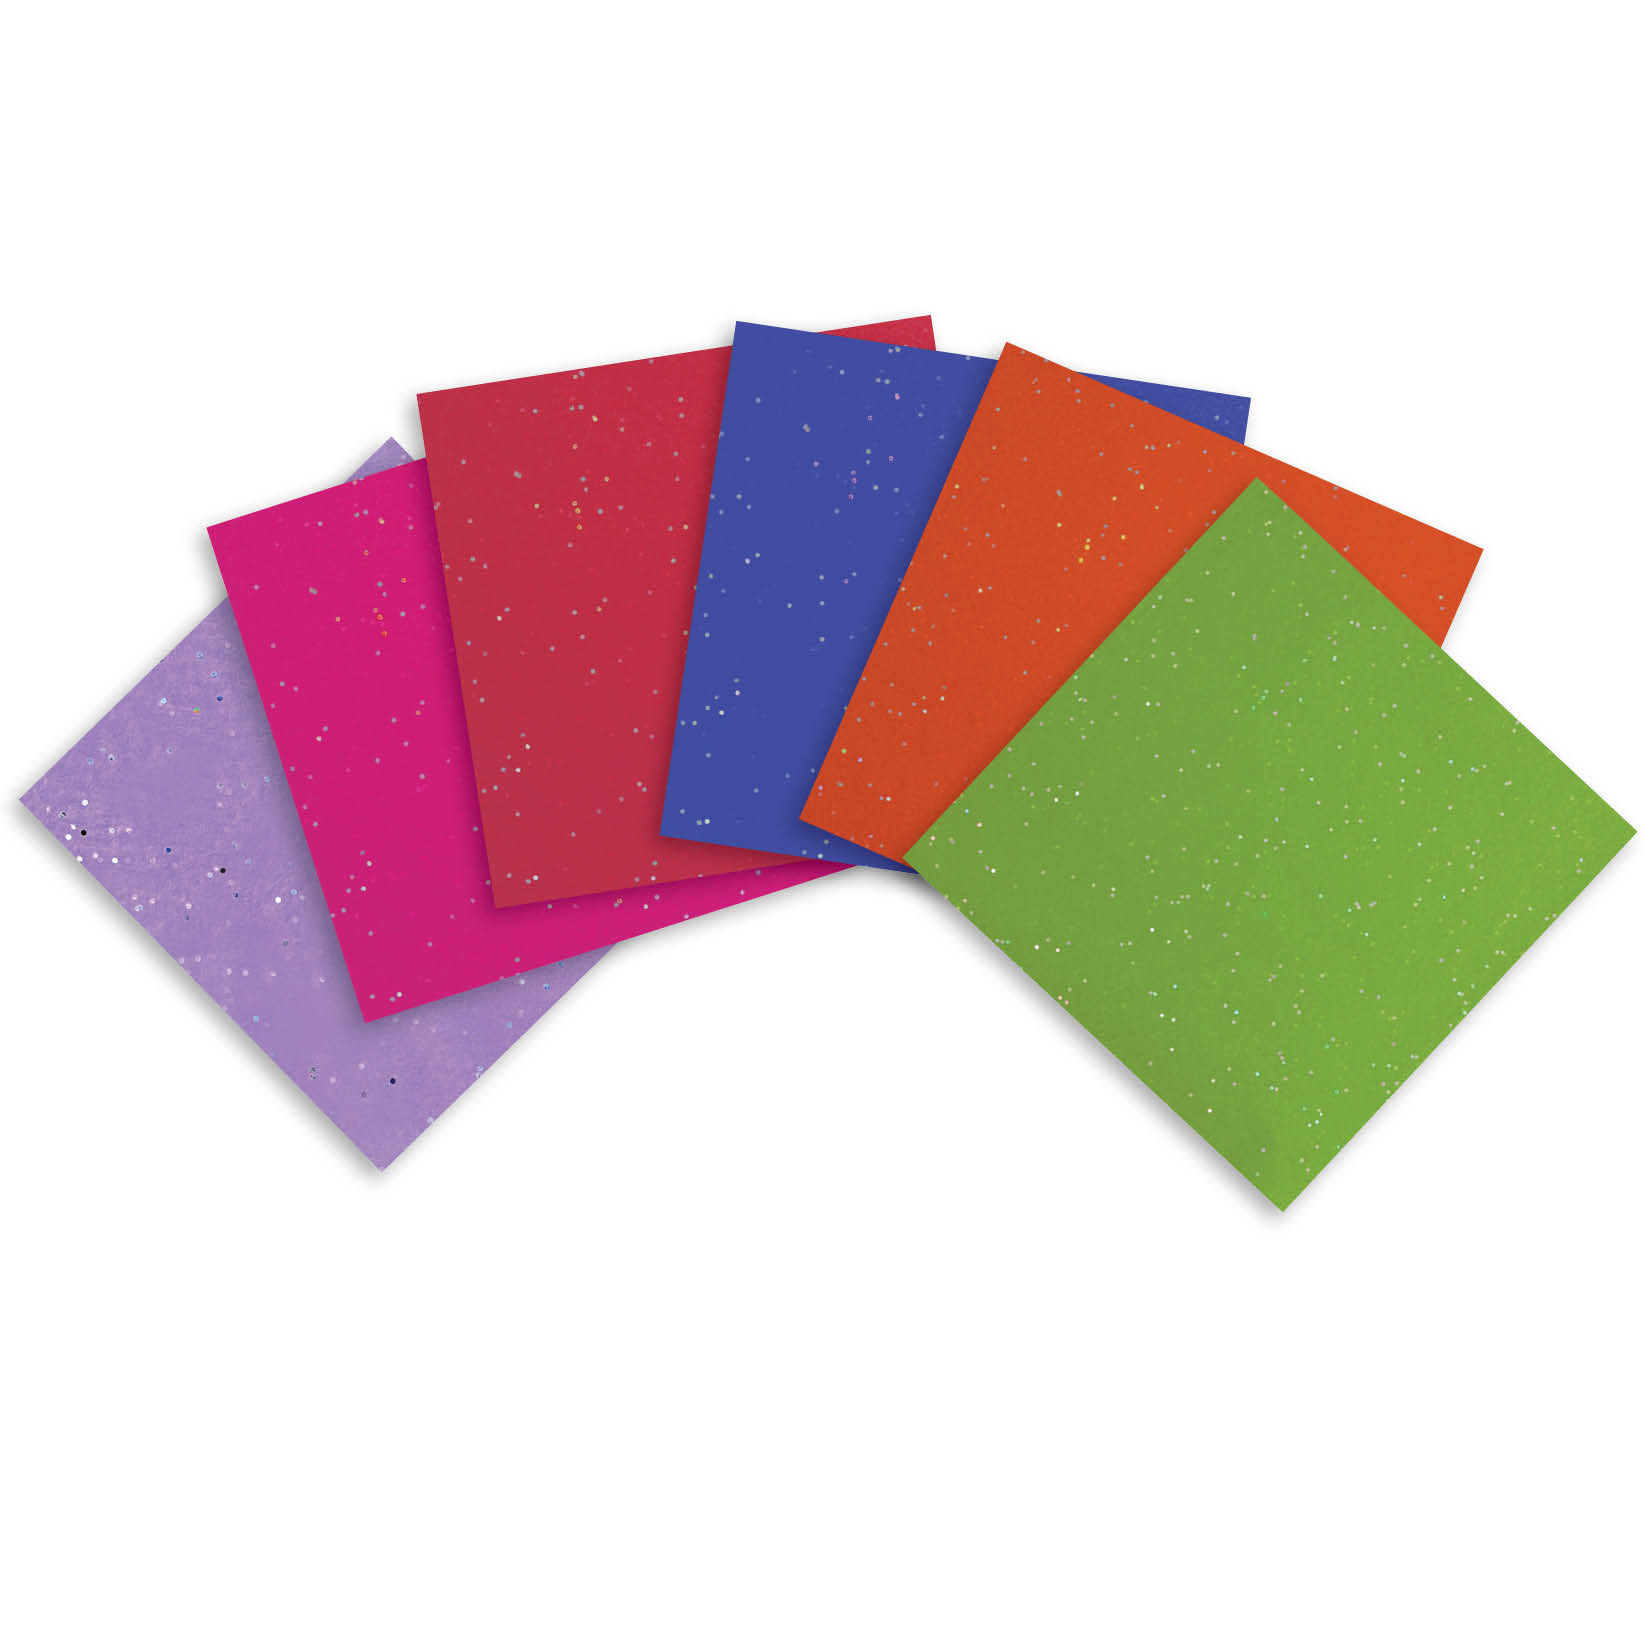 Jillson & Roberts Gemstone Gift Tissue Assortment, Primary (24 Sheets)